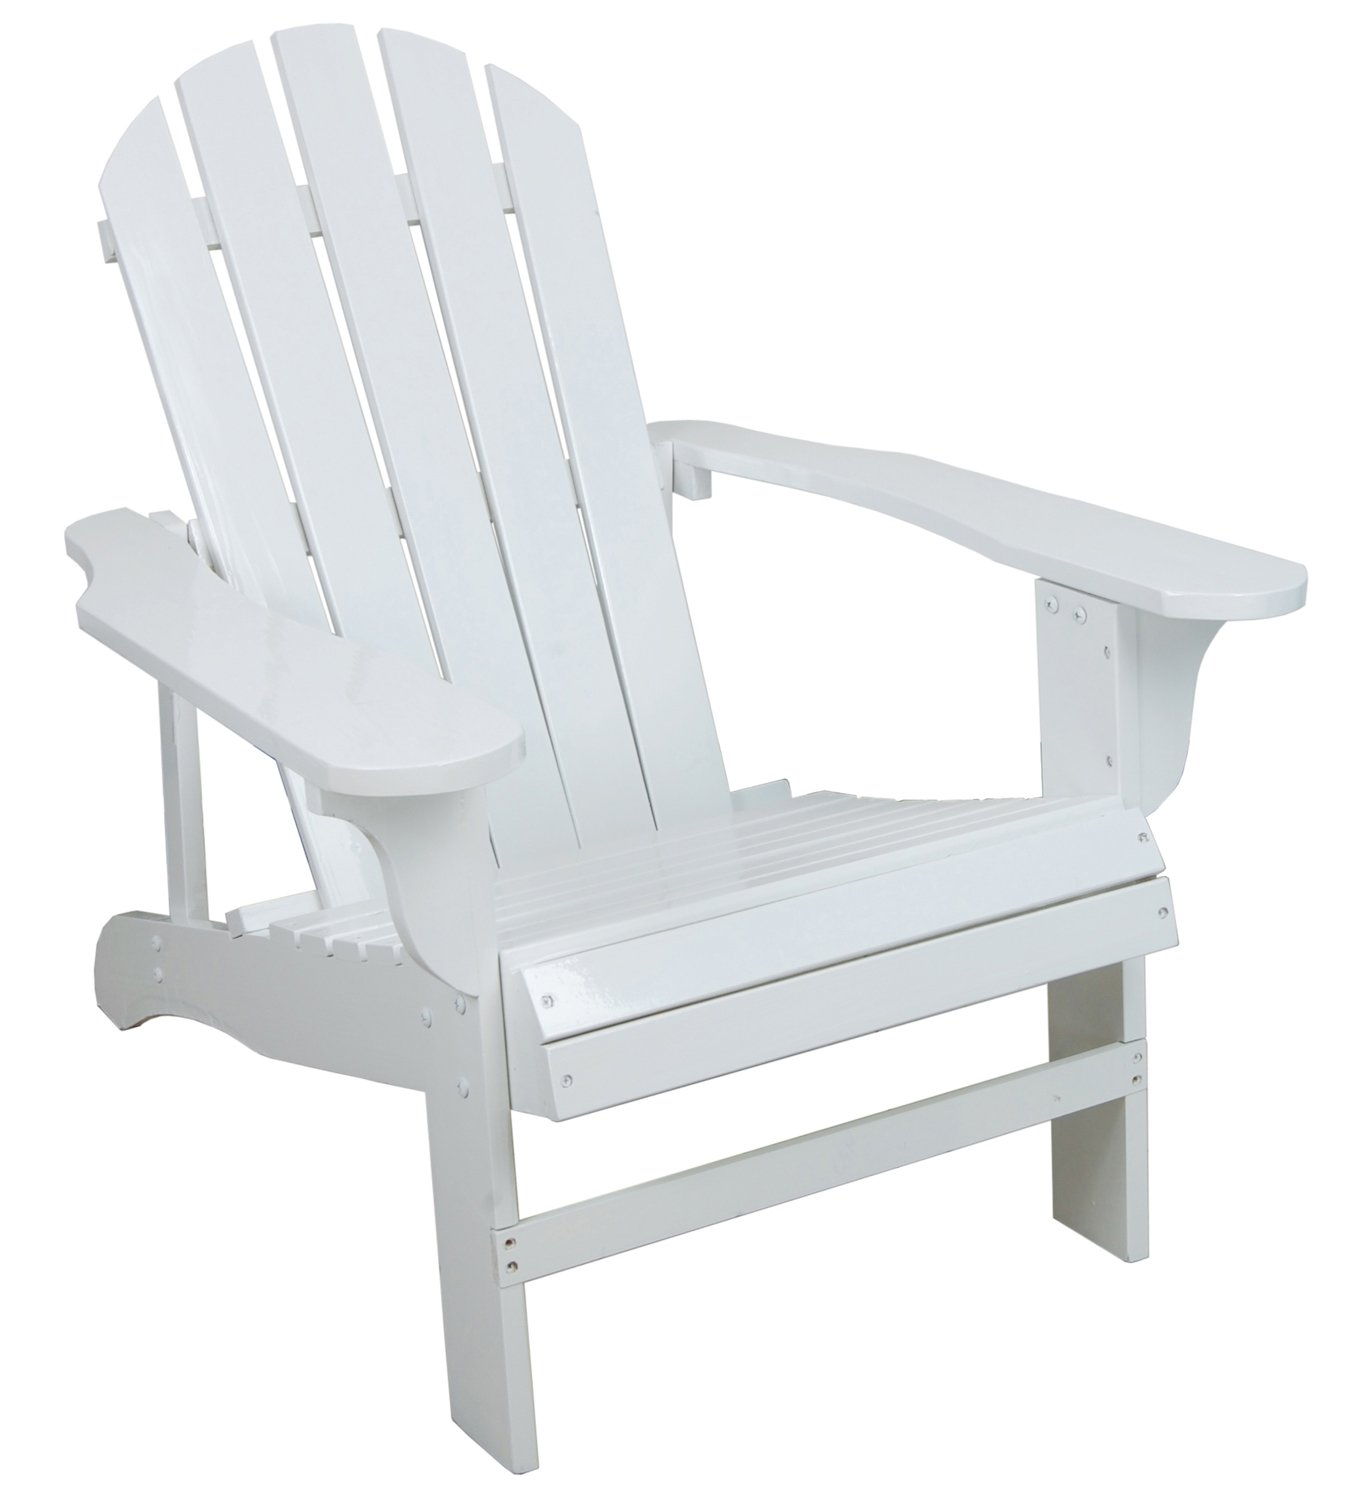 Charmant Amazon.com : Classic White Painted Wood Adirondack Chair : Chaise Lounges  Cushions : Garden U0026 Outdoor